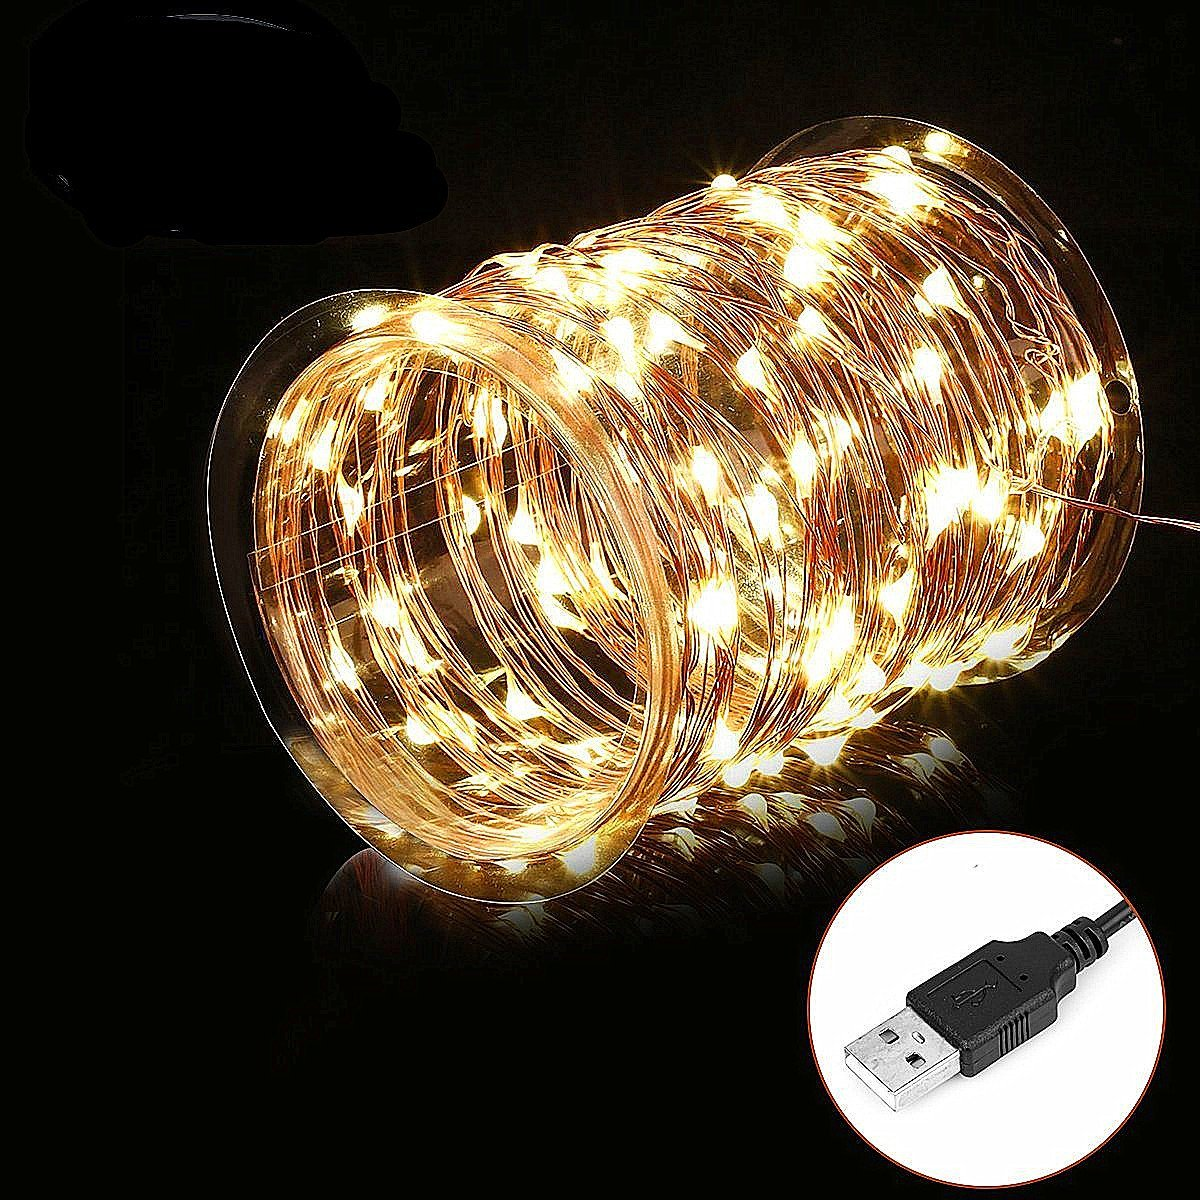 Waterproof 10m 100 Led Fairy String Lights USB Powered Copper Wire Lights for Bedroom Party Wedding Christmas Decorative Lights